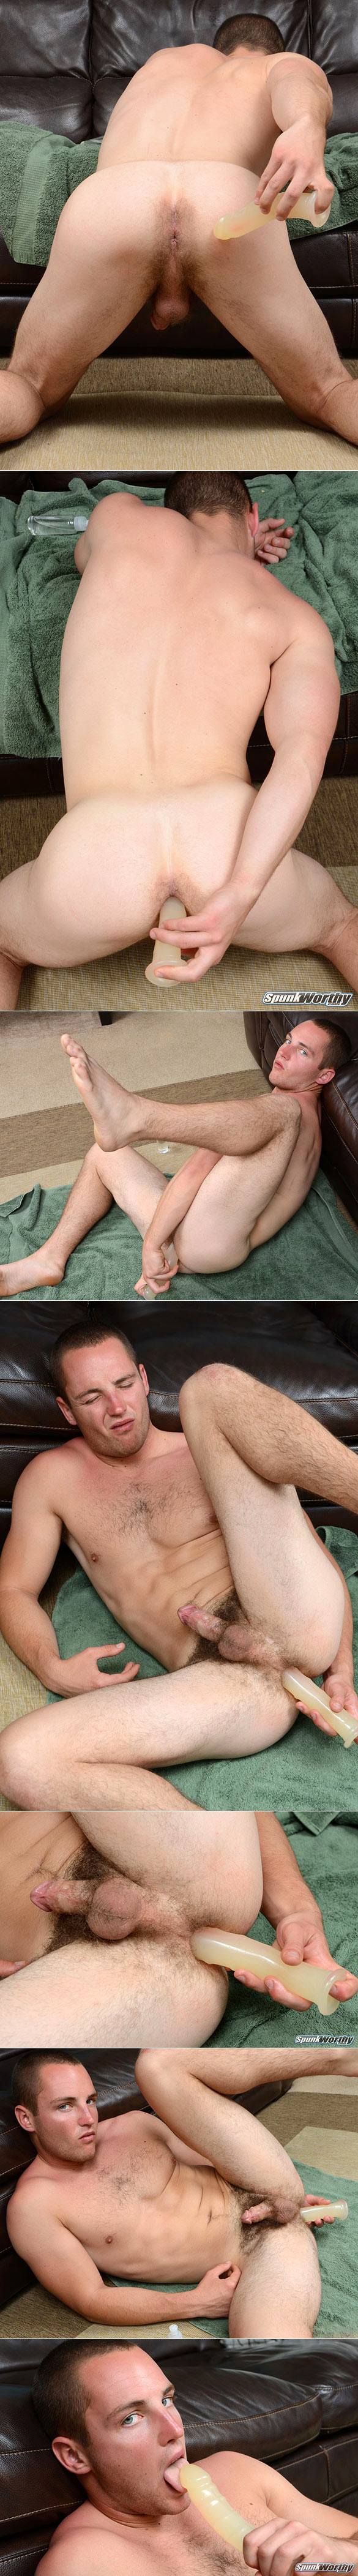 SpunkWorthy: Marine Dean fucks himself with his first dildo